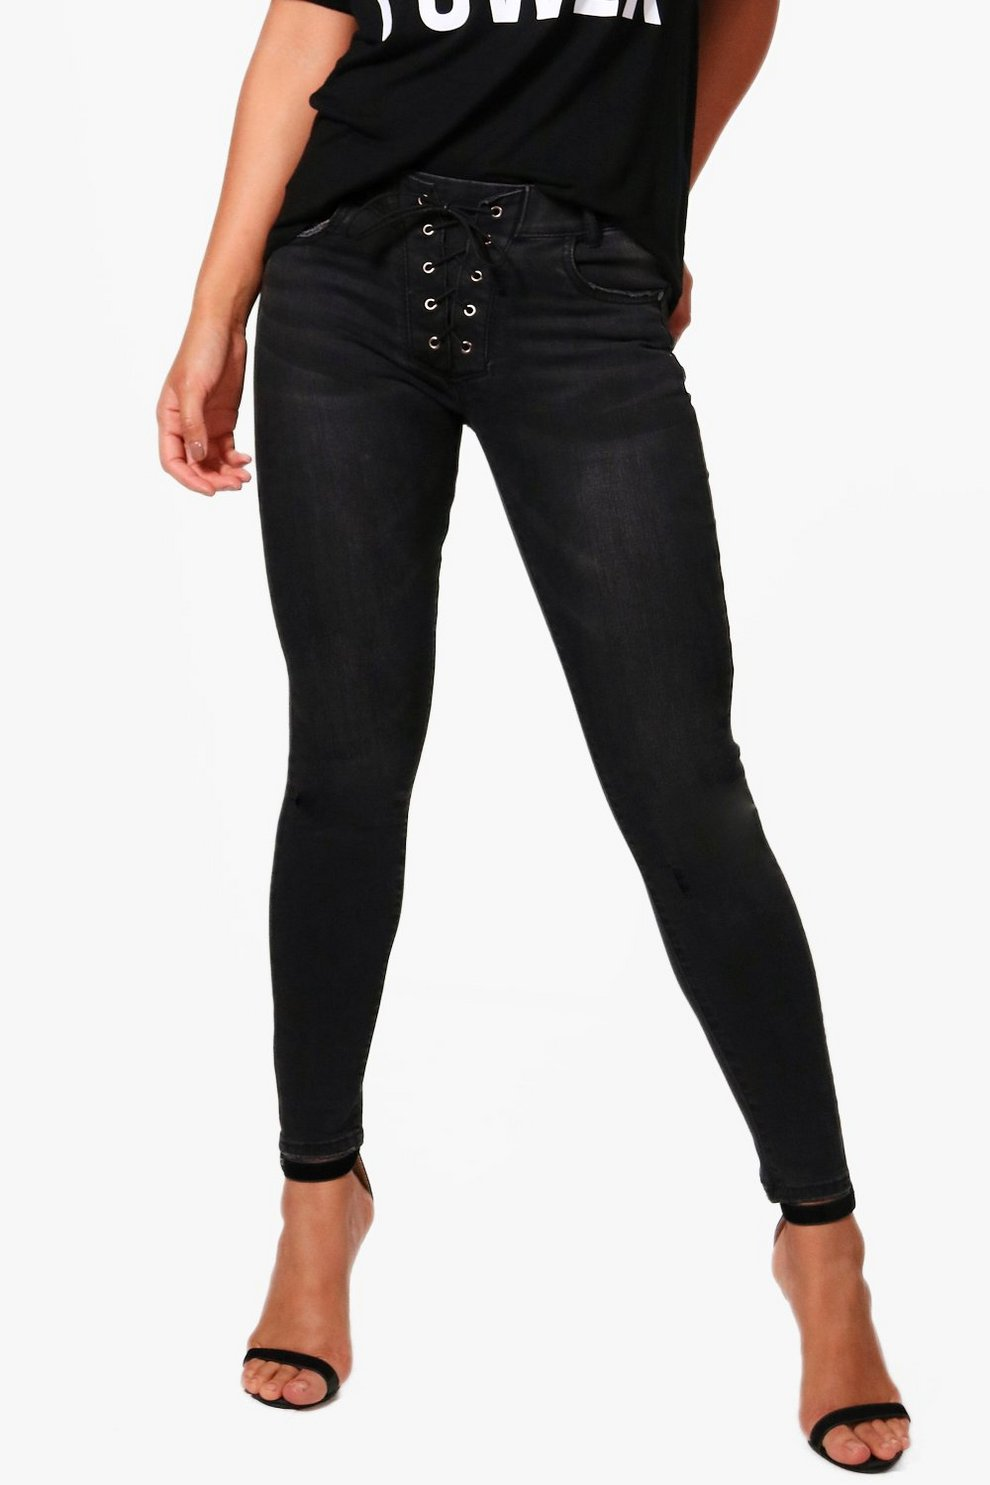 Outlet Visit Boohoo Lace Up Detail Skinny Jeans Clearance Affordable Clearance Official Site Purchase Cheap Online Authentic Cheap Online zAKRKxPC